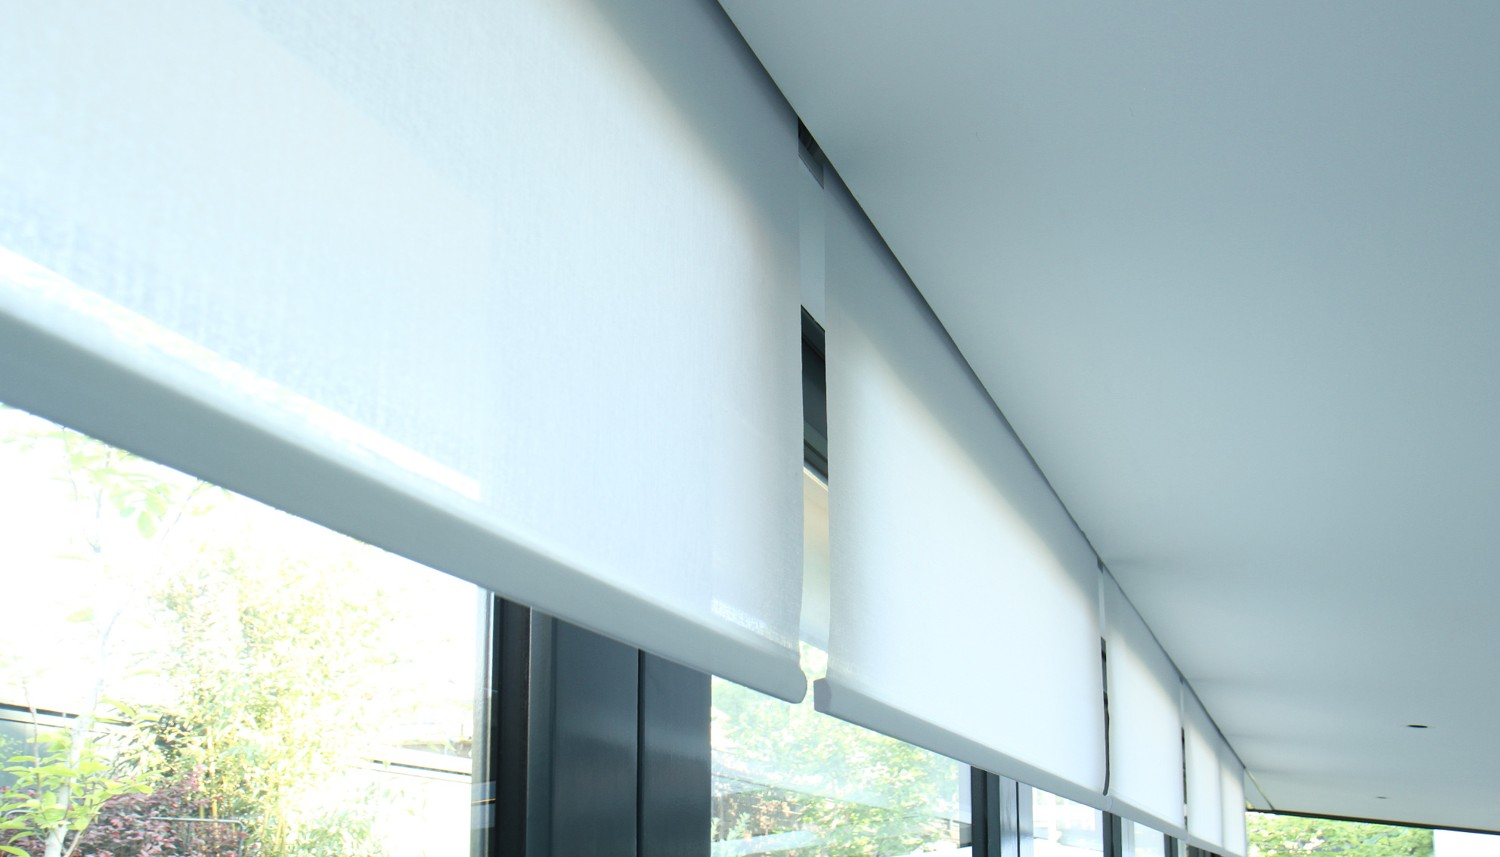 Roller shades recessed in ceiling2.jpg